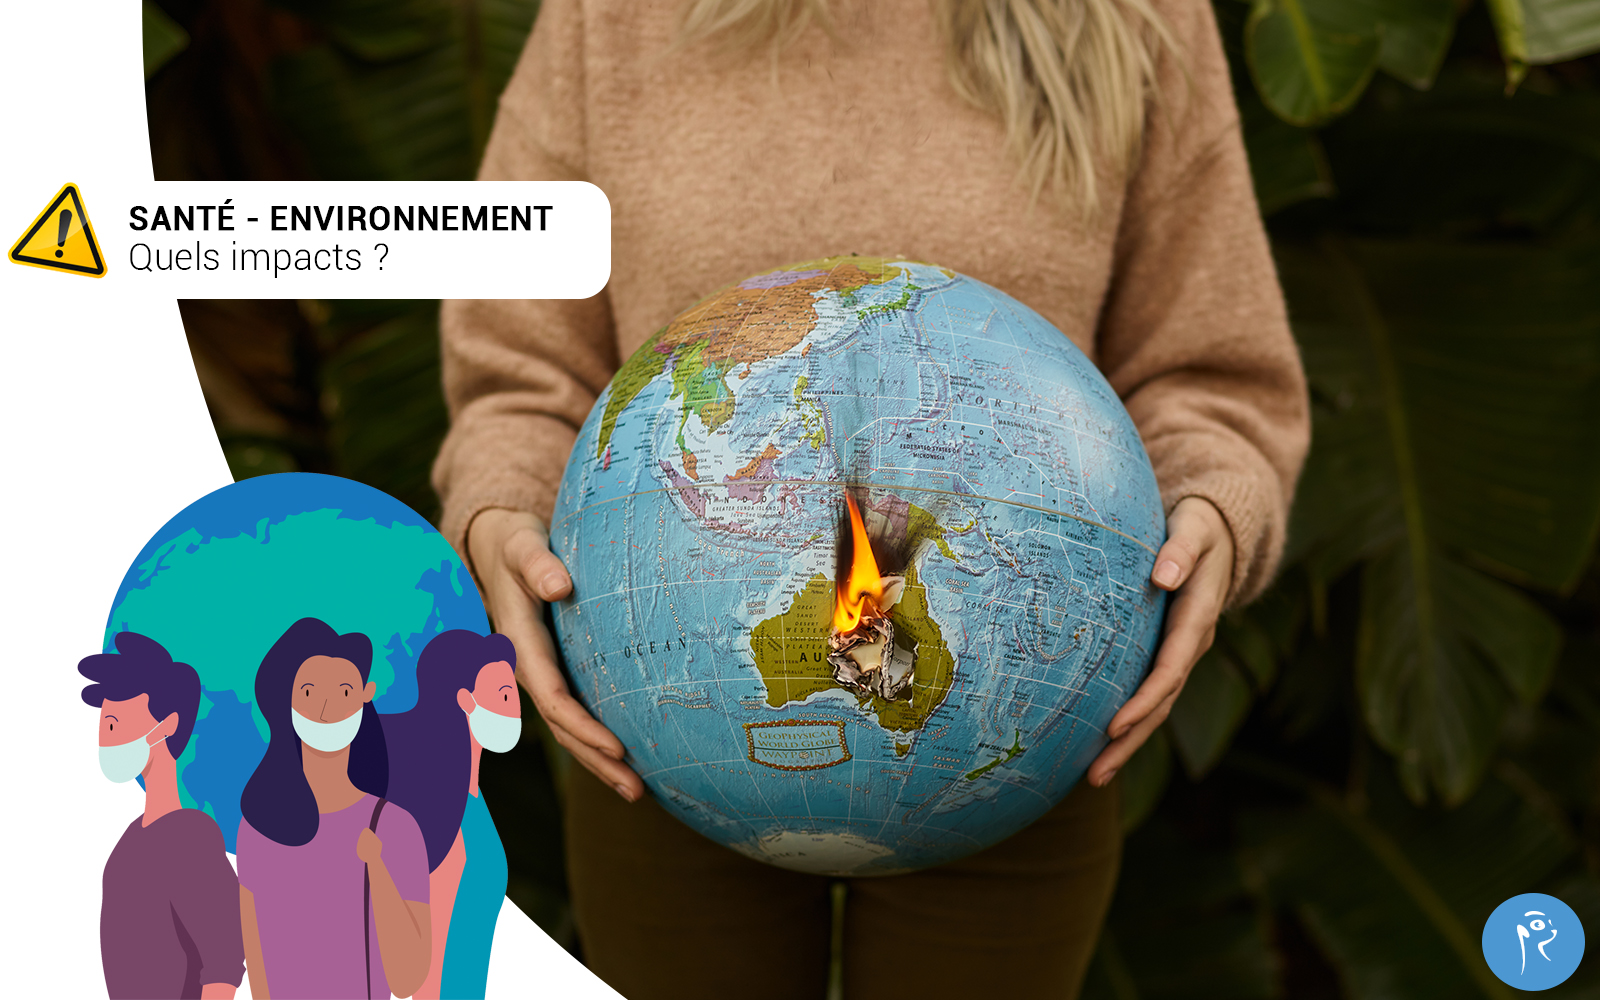 Each year, in the world, it is about 13 million deaths due to the environment and 7 million prematured deaths due to a bad air quality. The environmental health is a primordial stake for public health.